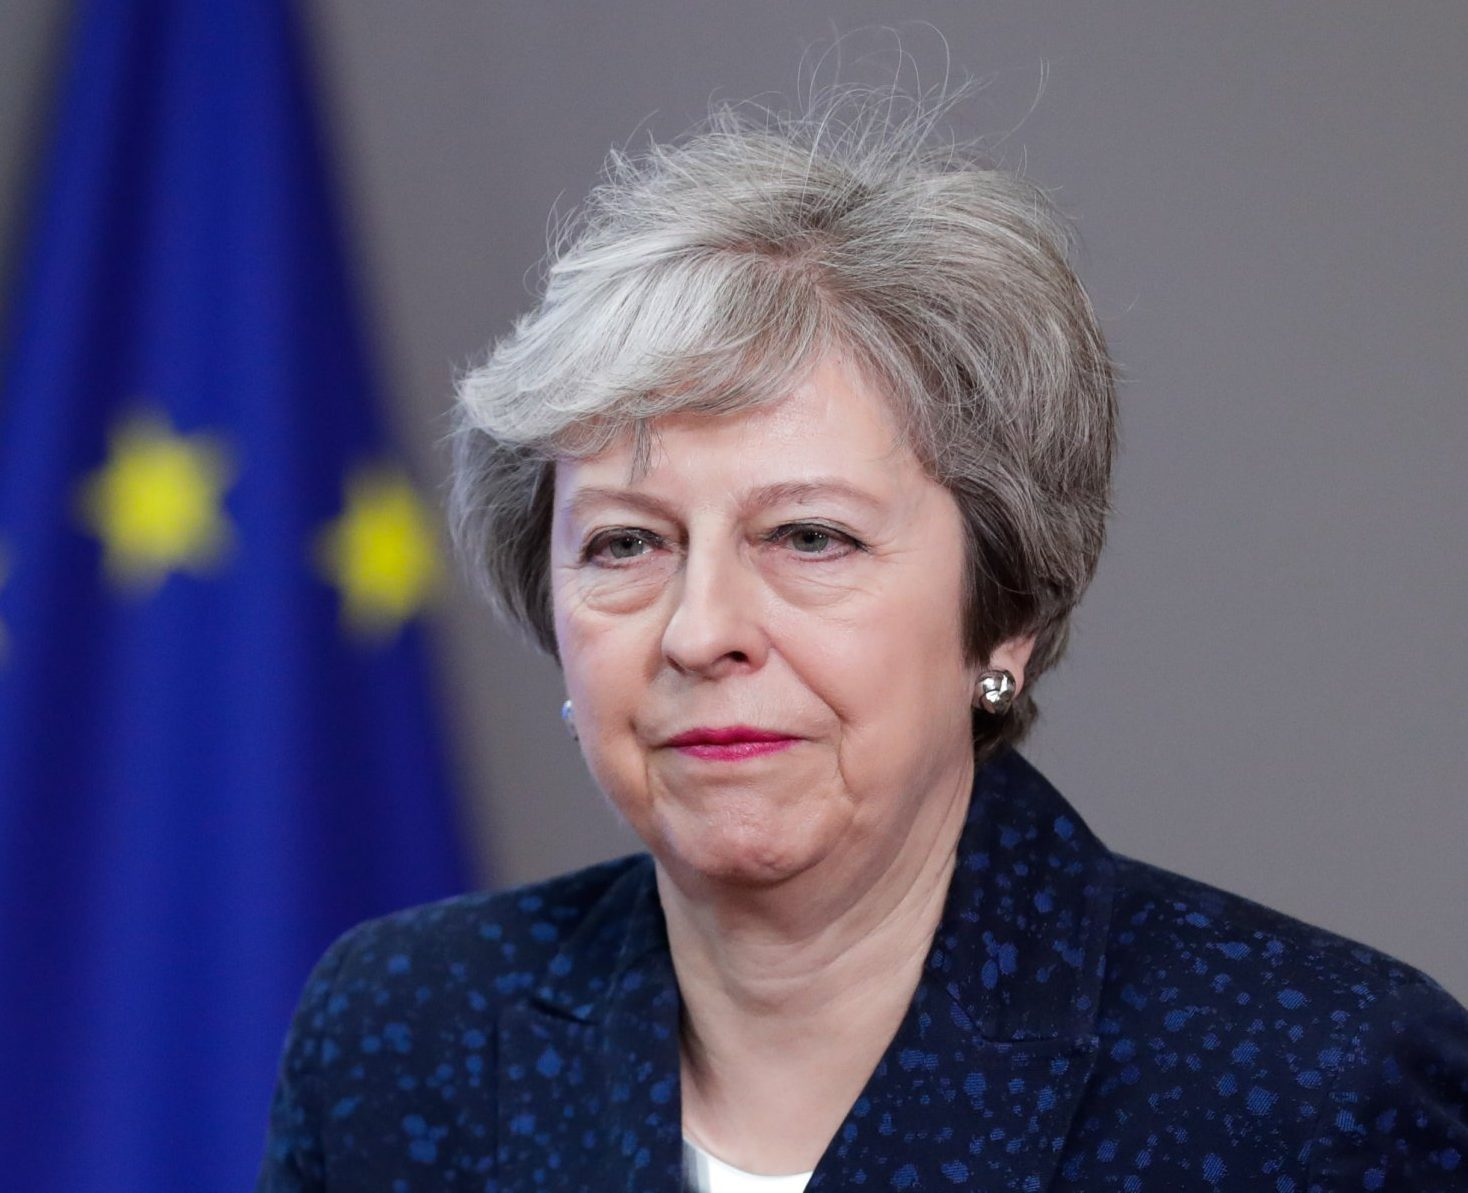 epa07350423 British Prime Minister Theresa May arrives to speak to the press after a meeting with the President of the European Council Donald Tusk at the European Council in Brussels, Belgium, 07 February 2019. May is in Brussels to discuss Brexit and related issues. EPA/STEPHANIE LECOCQ